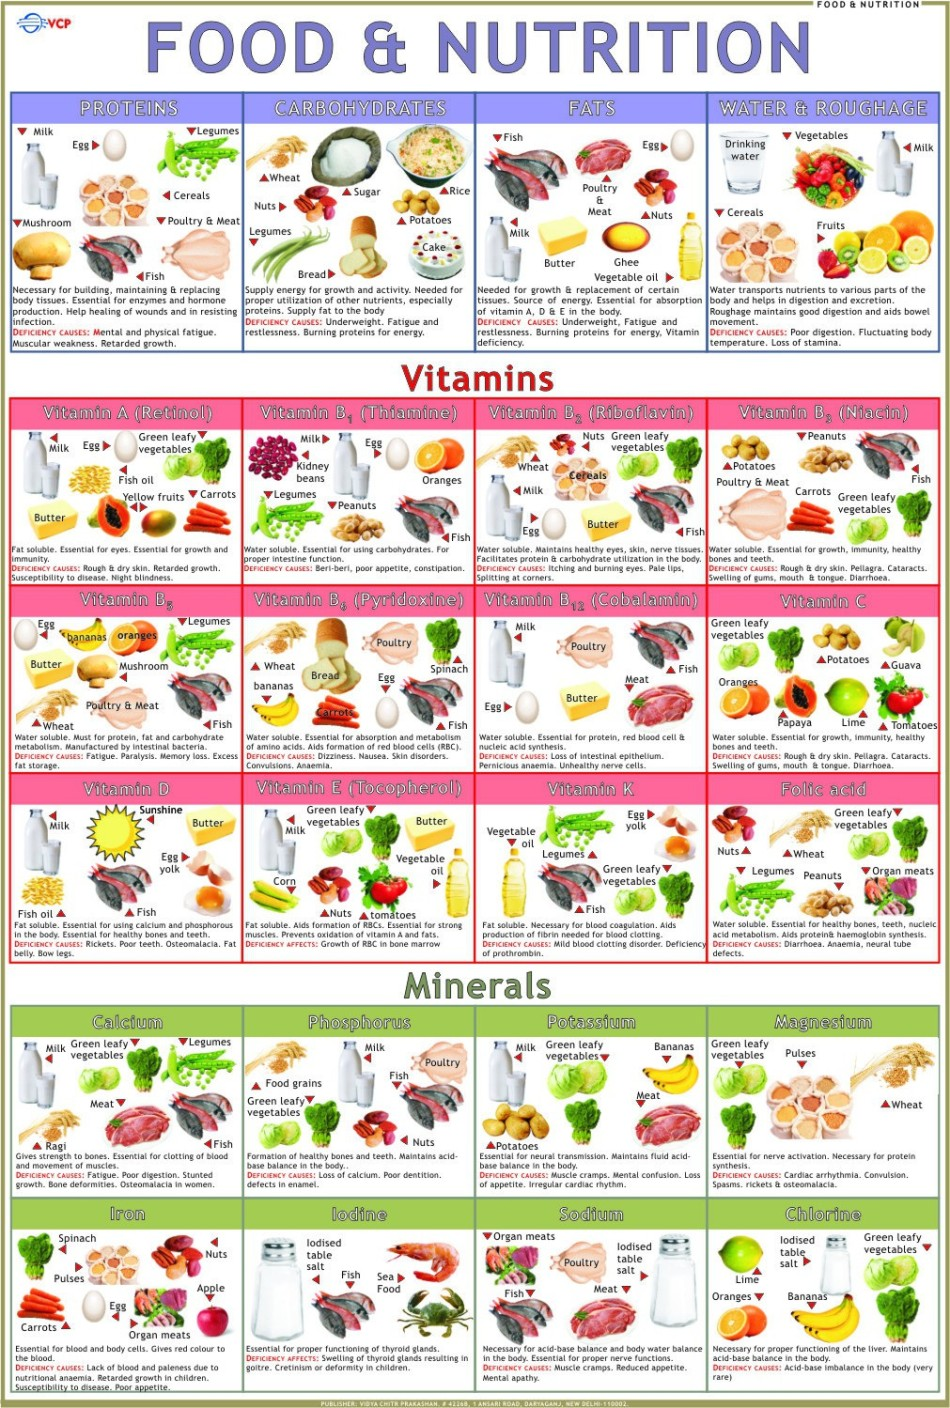 Scientifically Proven Benefits of Food